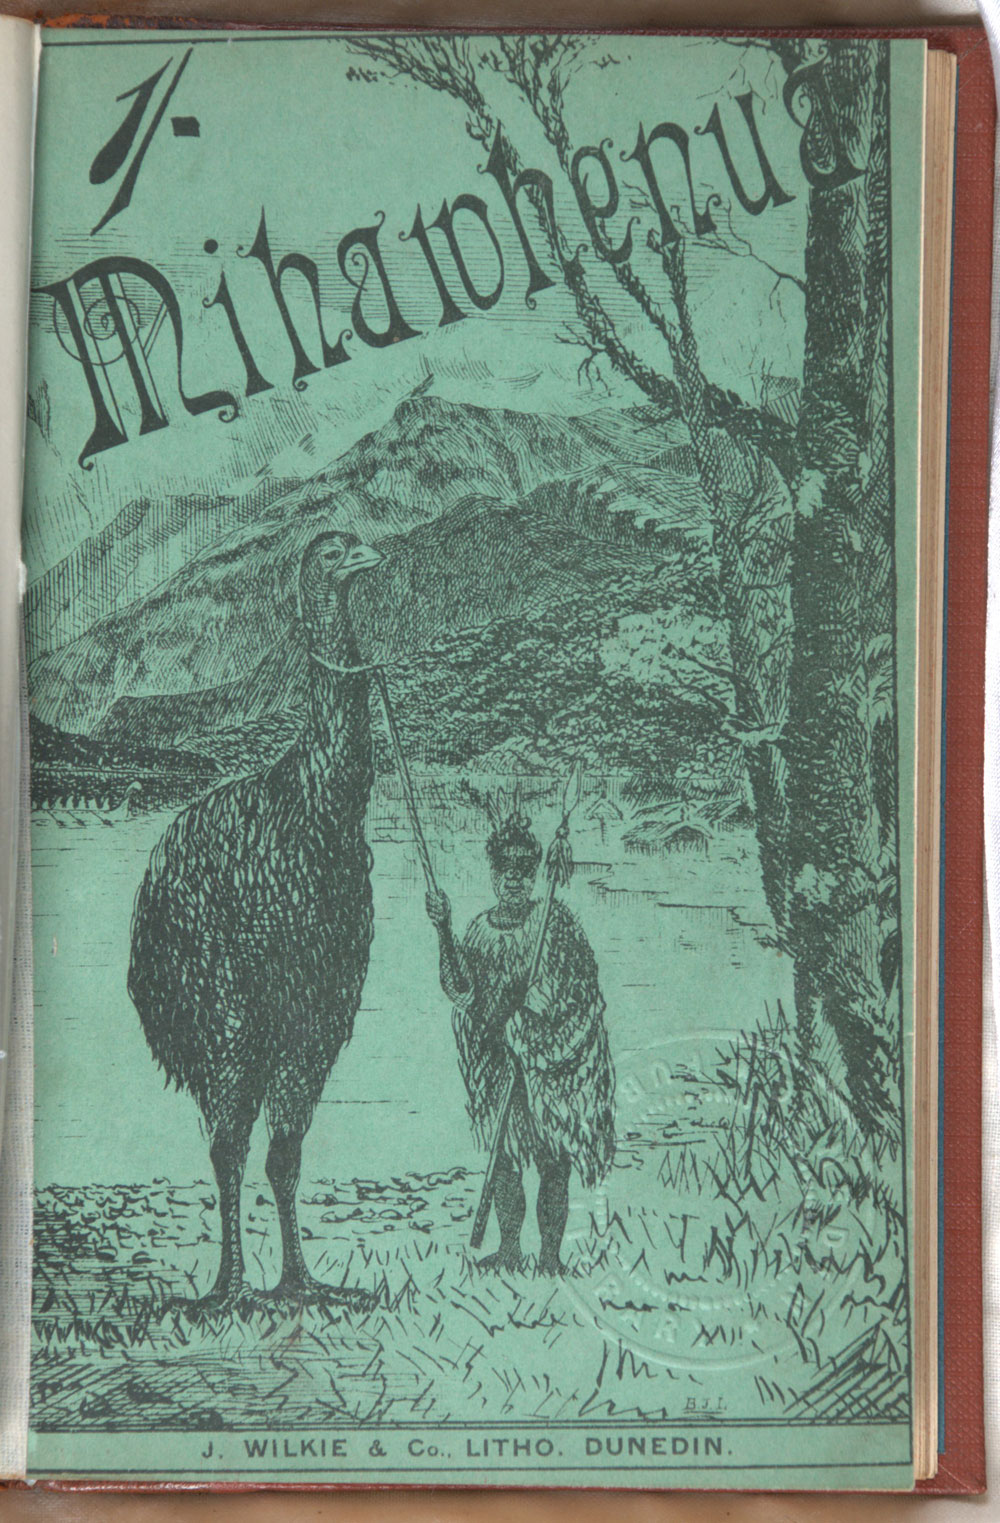 R.W. Brock. <em>Mihawhenua: the adventures of a party of tourists amongst a tribe of Maoris discovered in Western Otago, New Zealand.</em> Dunedin: J. Wilkie & Co., 1888.